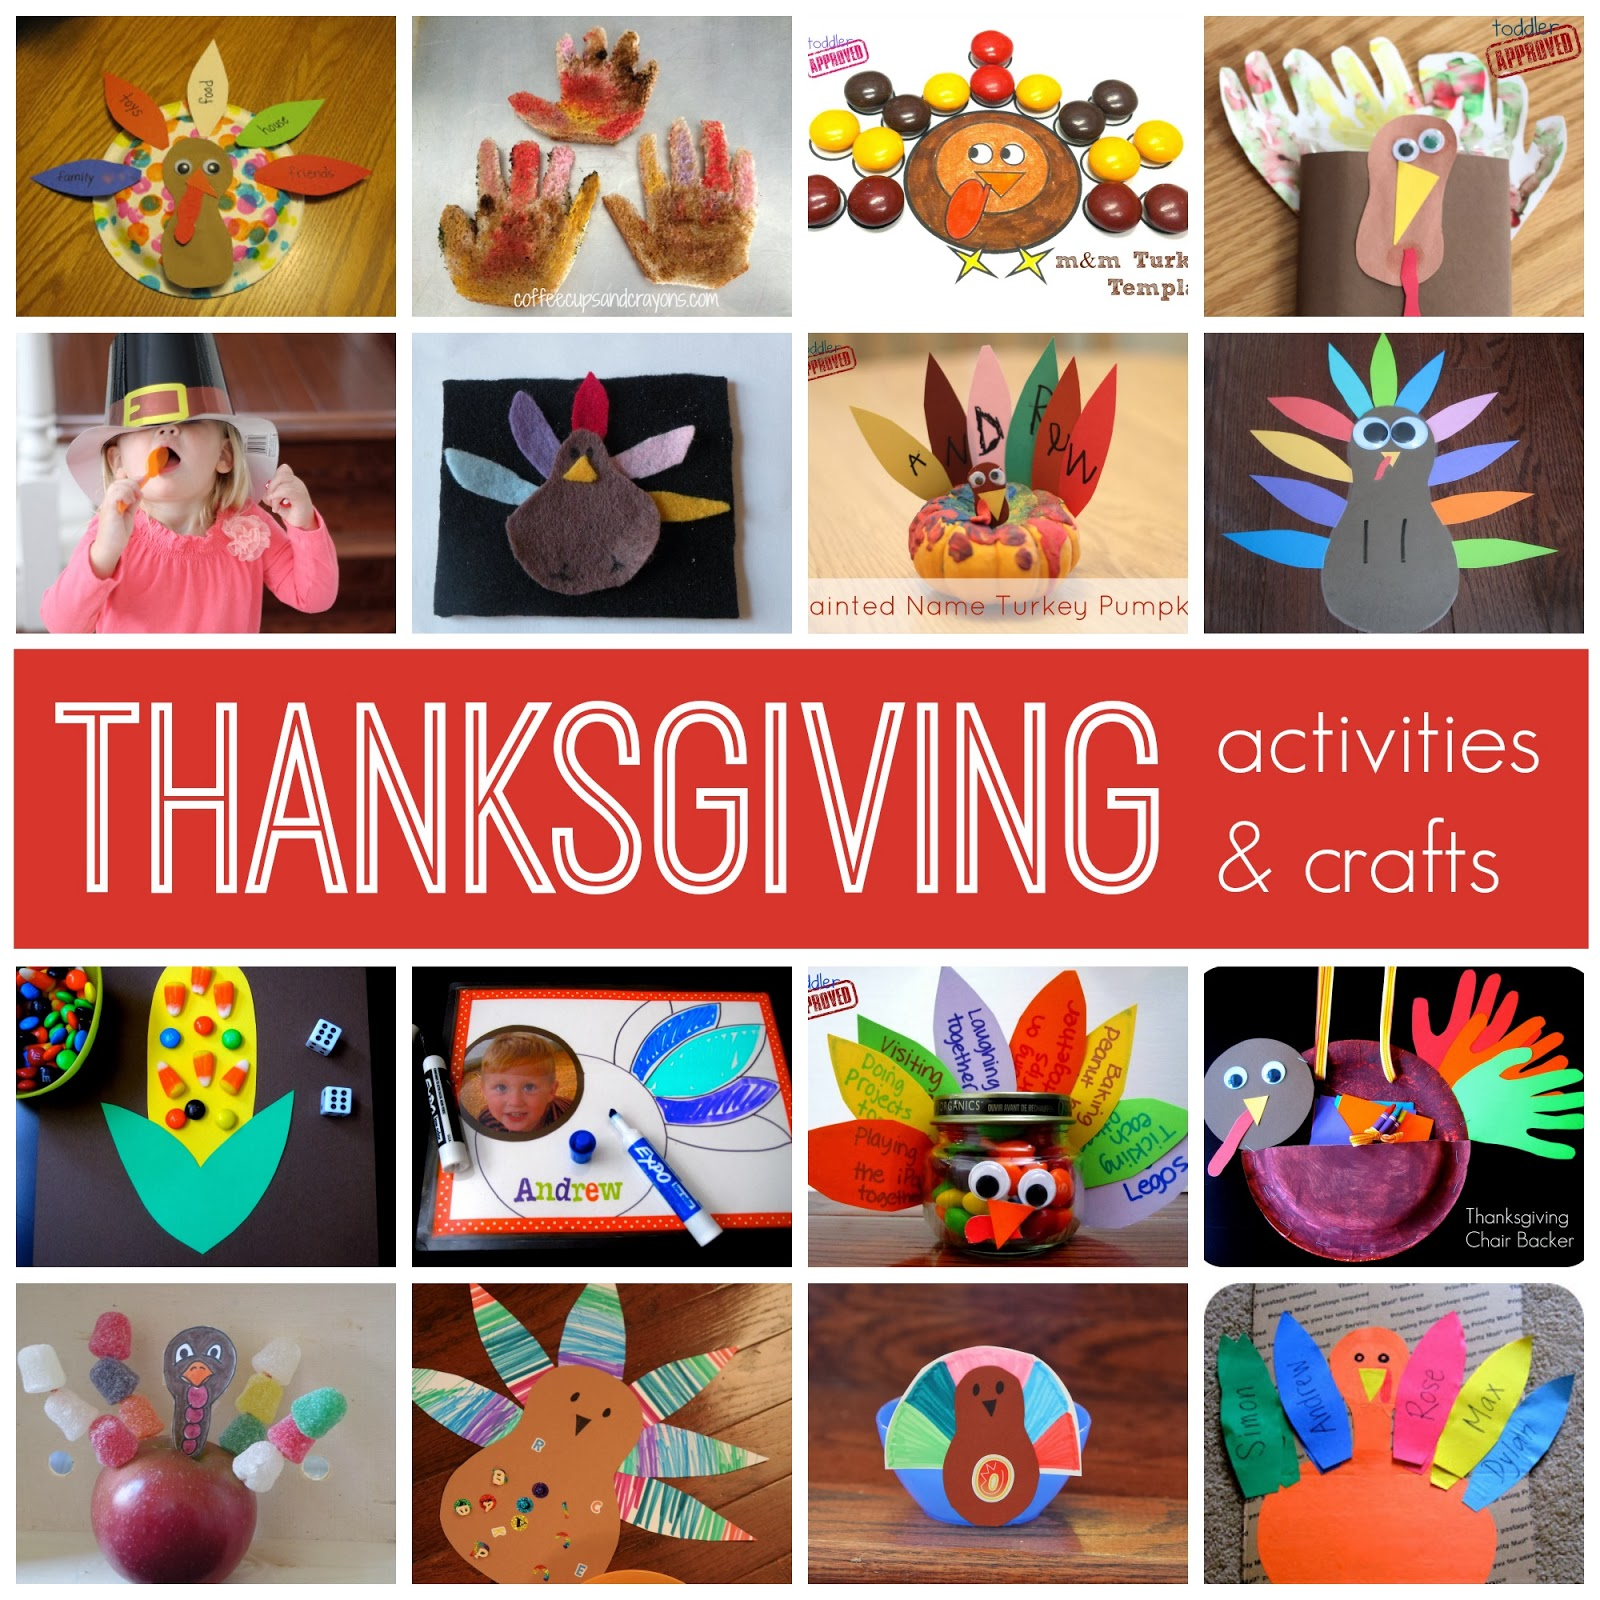 Activities Crafts Games: Toddler Approved!: Simple Thanksgiving Activities & Crafts